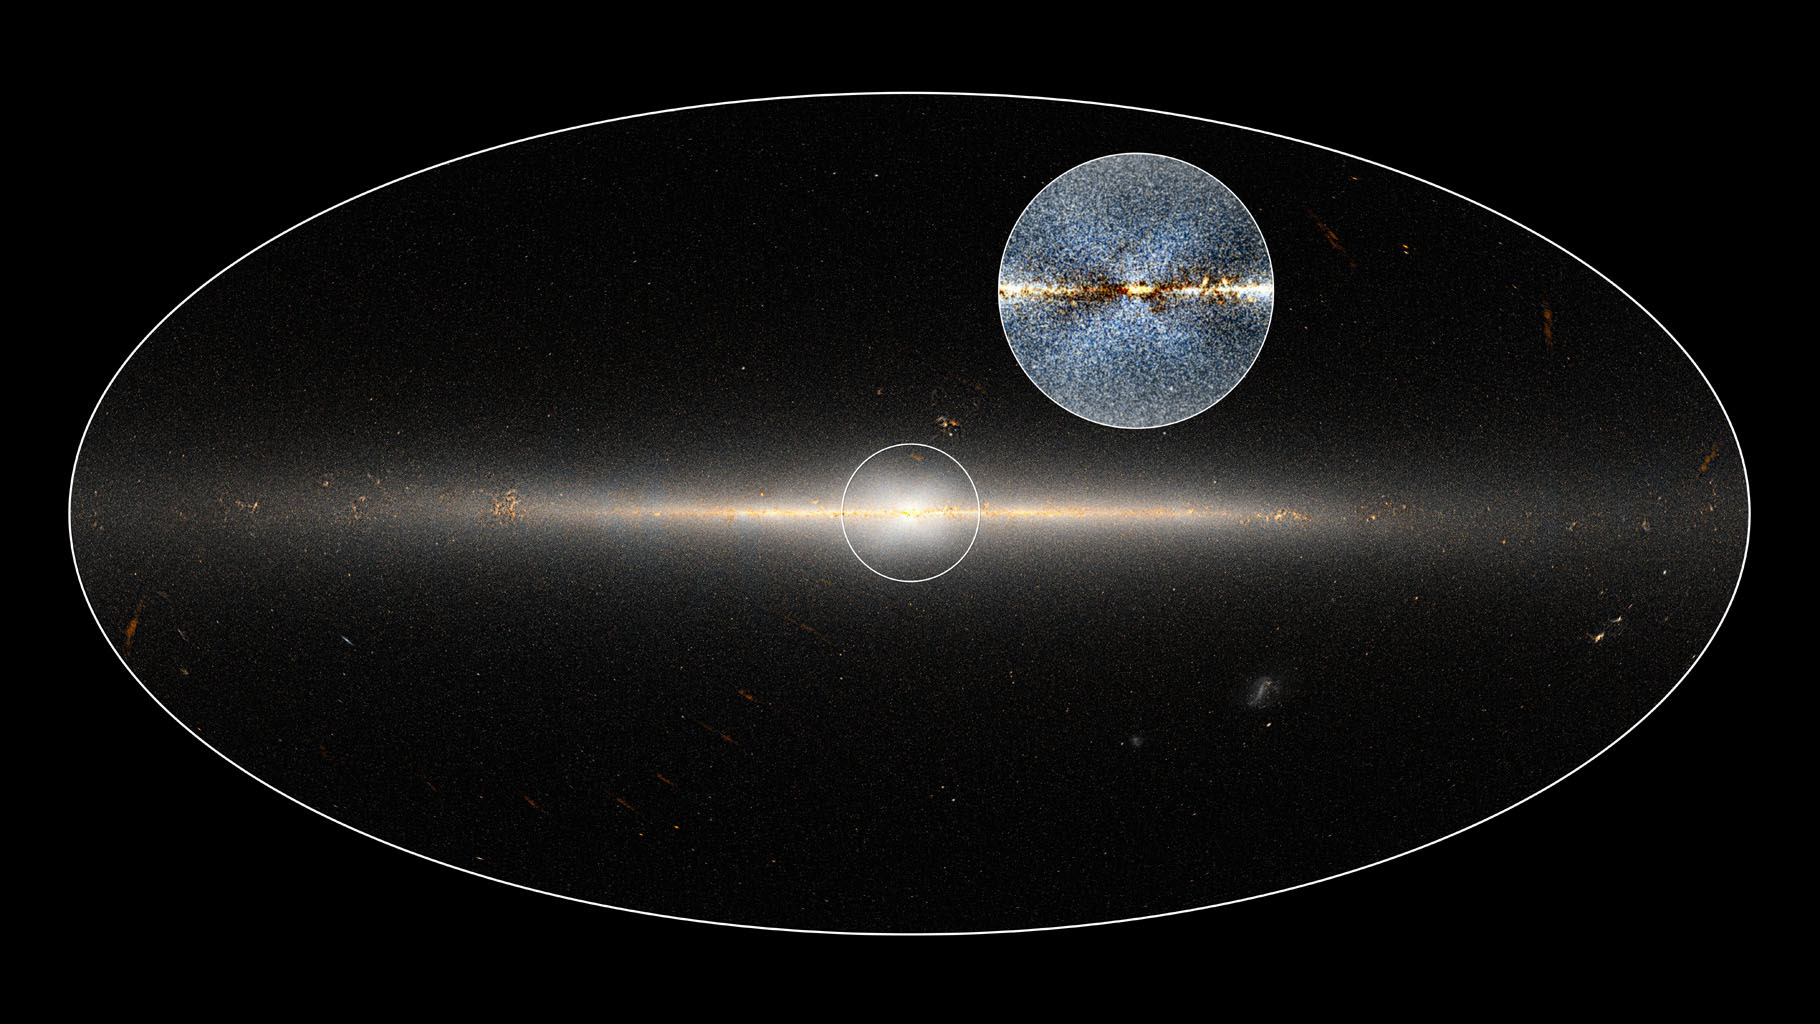 Researchers used data from NASA's Wide-field Infrared Survey Explorer (WISE) mission to highlight the X-shaped structure in the bulge of the Milky Way.